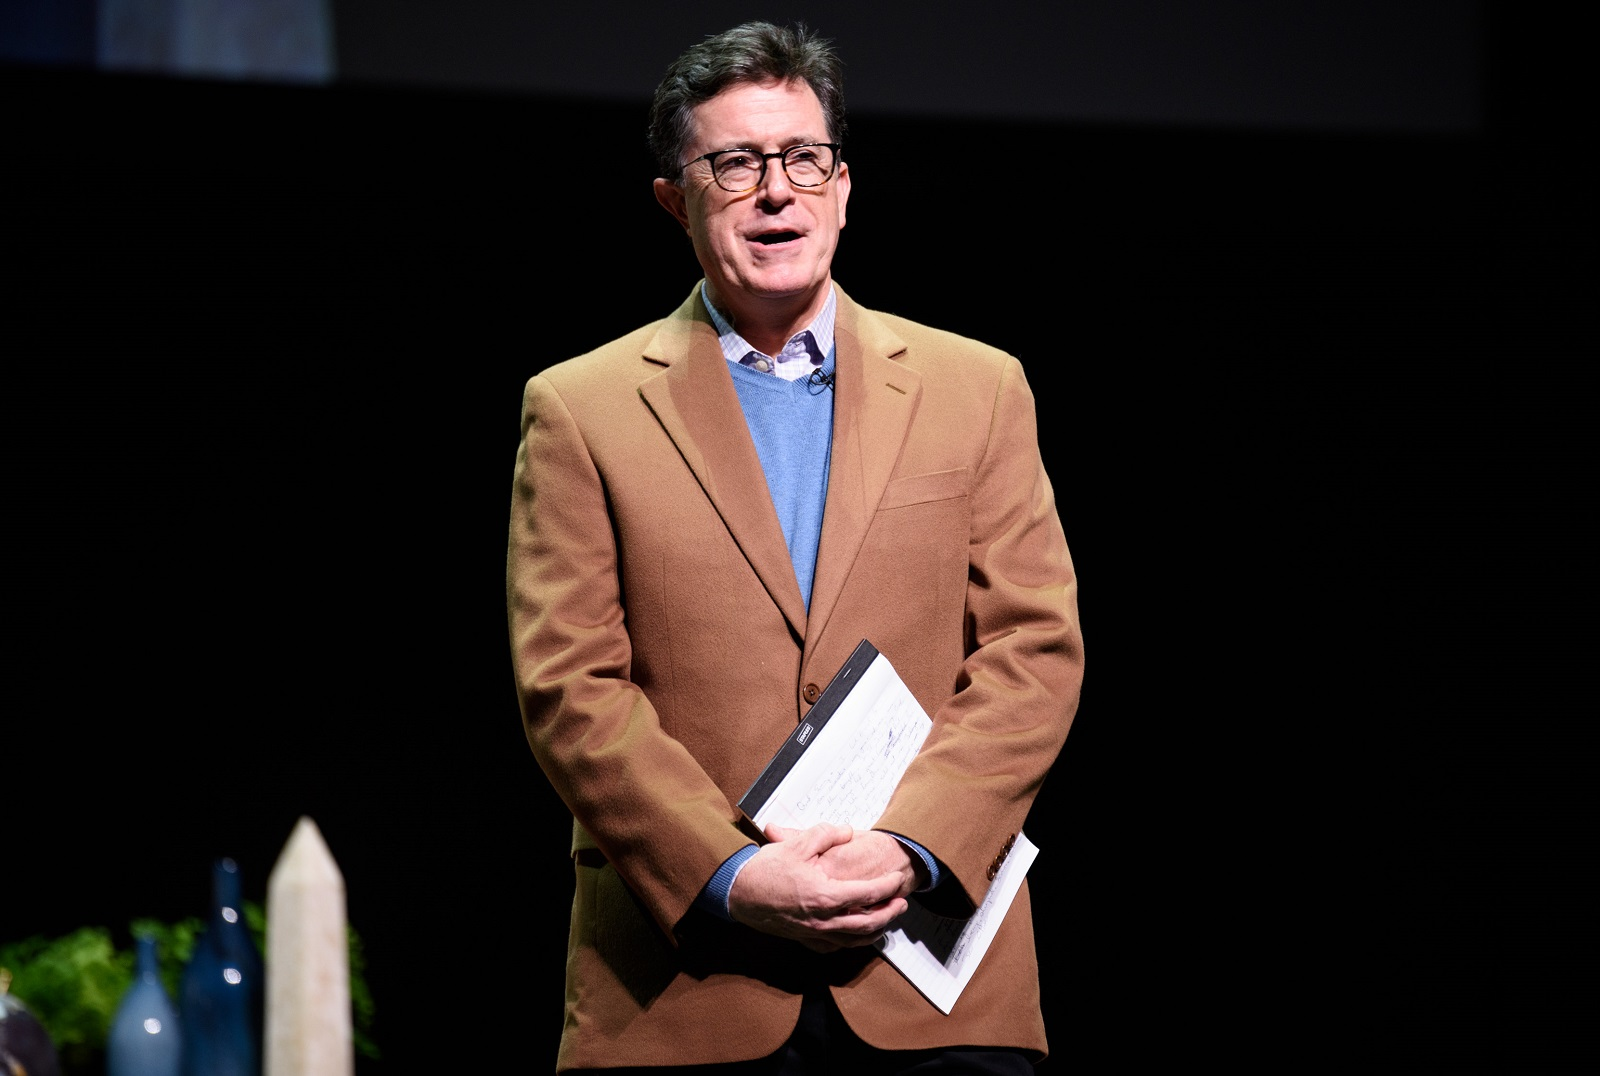 Stephen Colbert of 'The Late Show' did not apologize for his critical message of President Trump, although he did regret his word choice. (Getty Images)